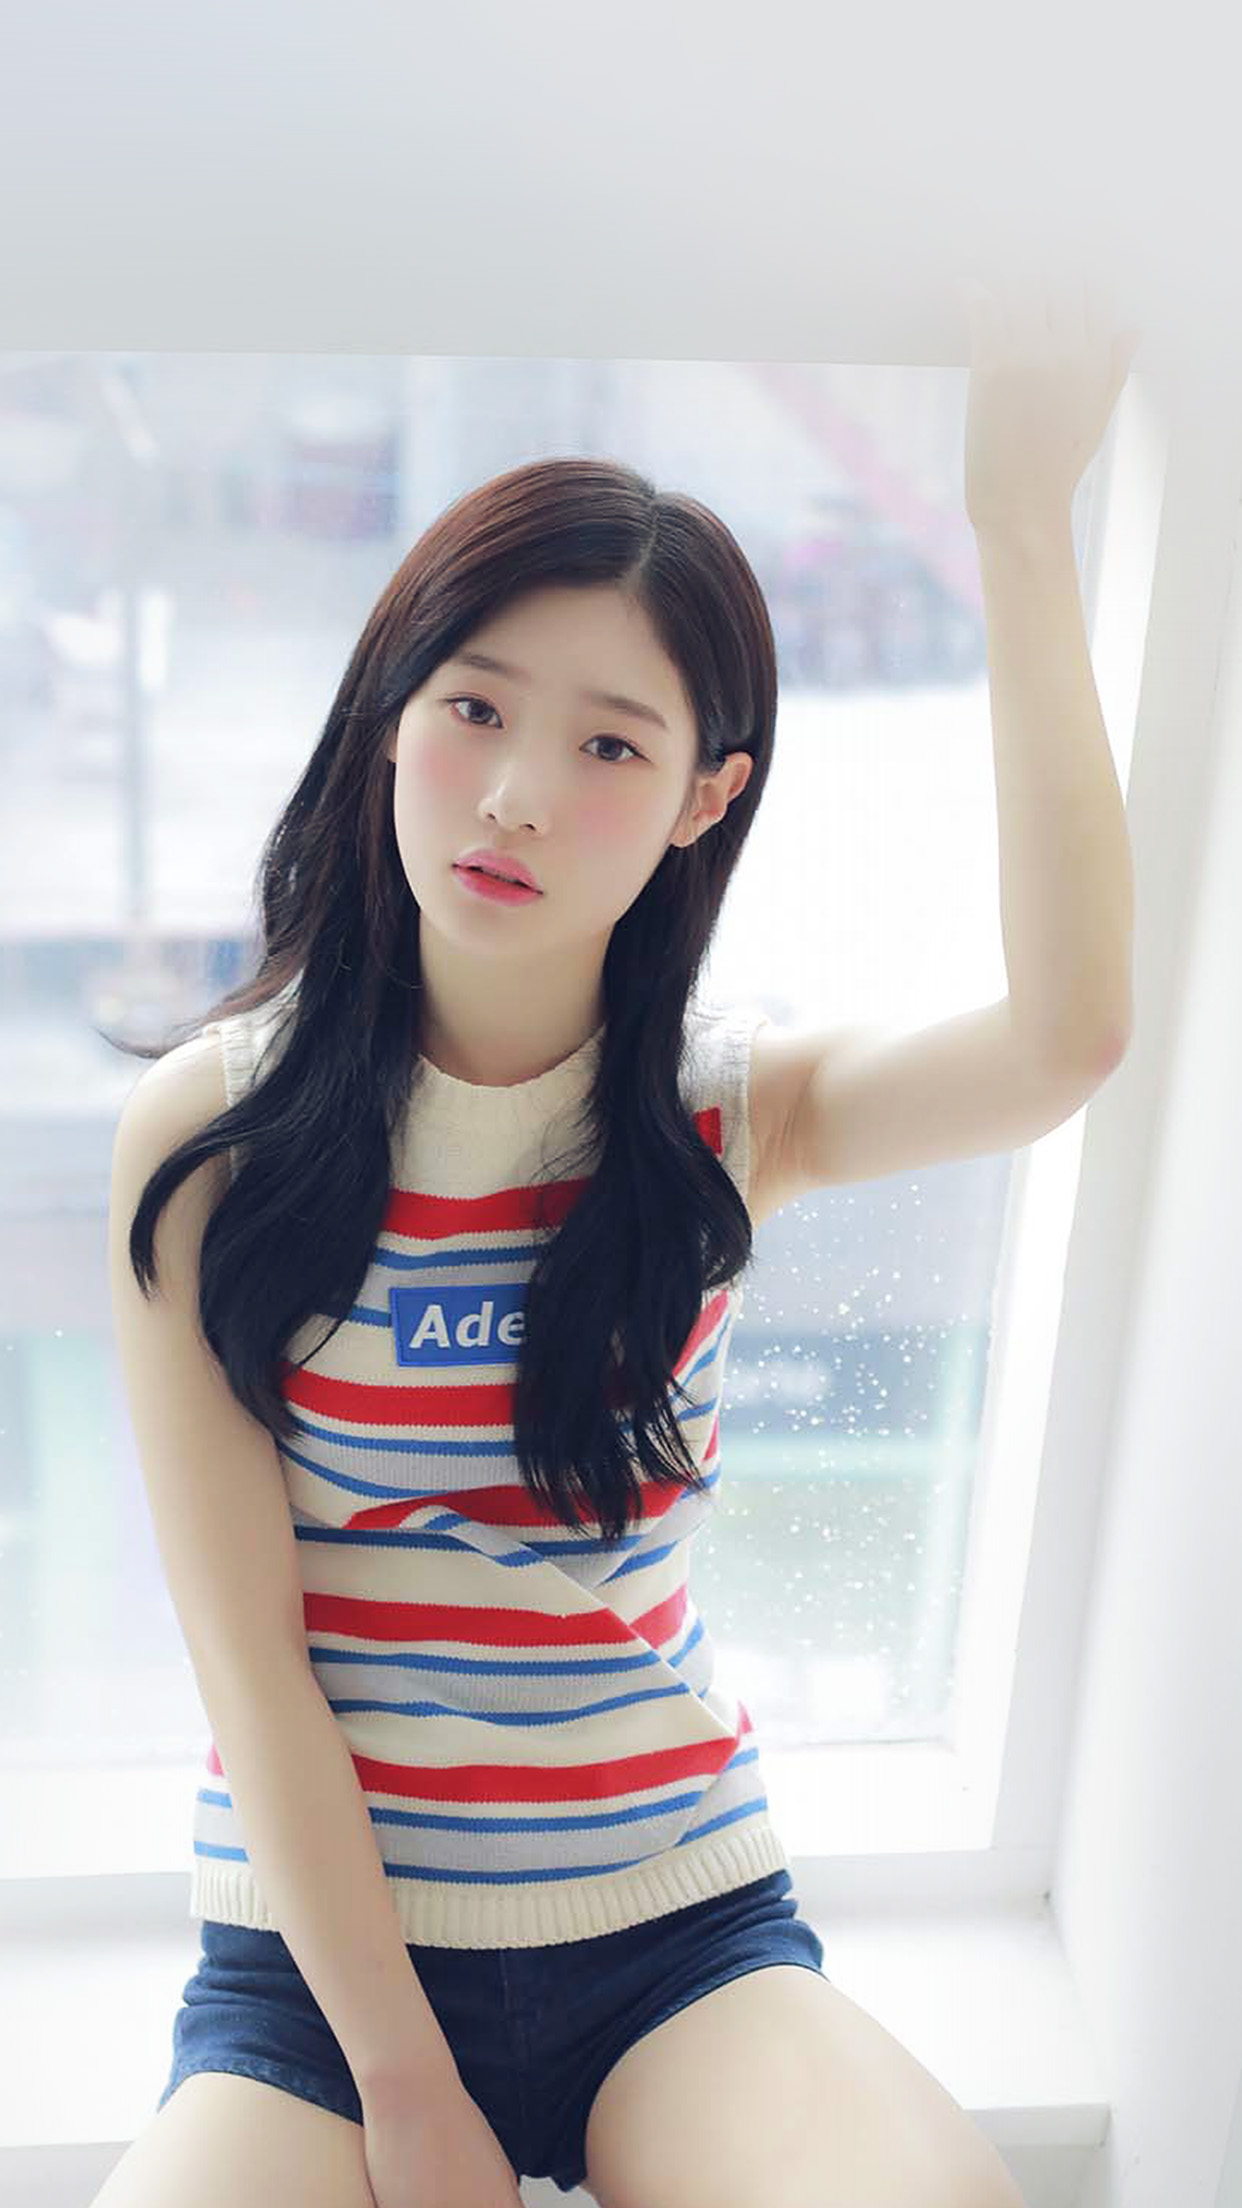 Chaeyeon Ioi Kpop Girl White Cute Android wallpaper ...